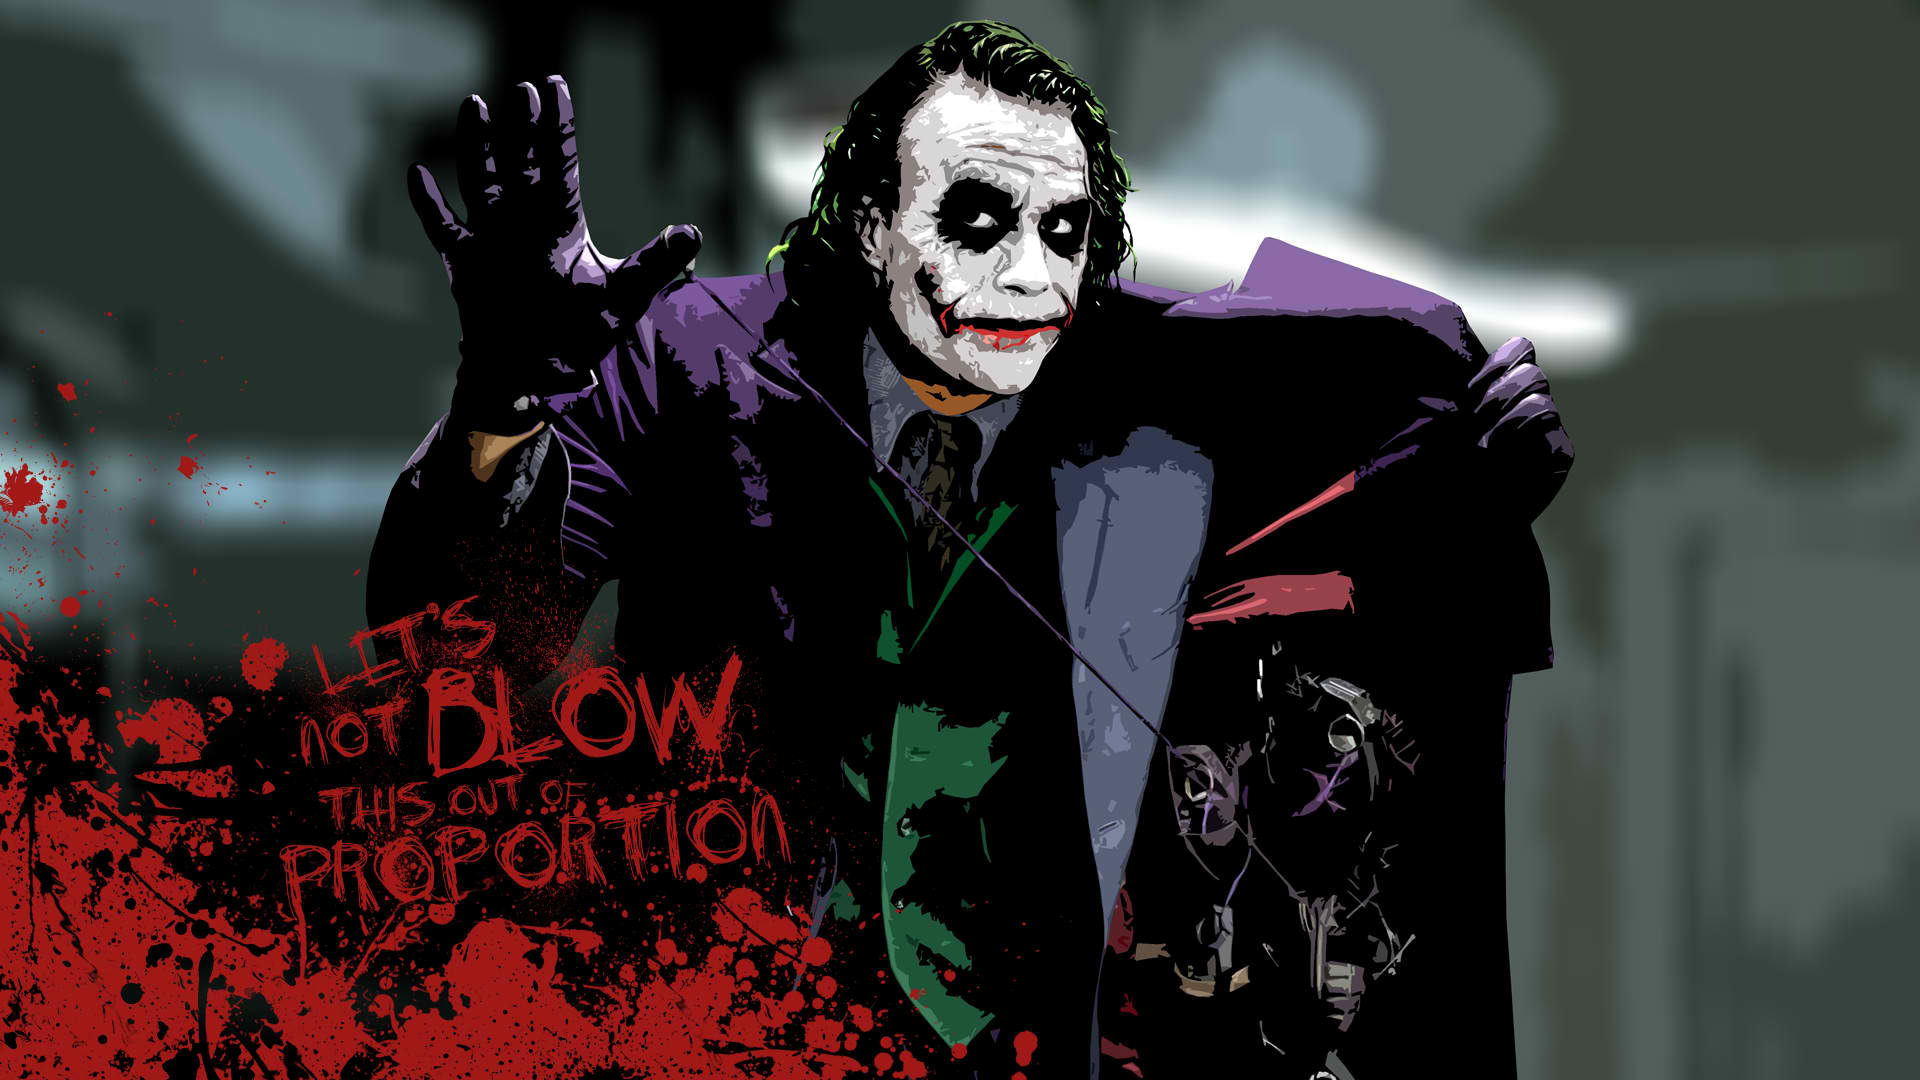 Download-The-Joker-1920x1080-Wallpoper-wallpaper-wp3605064